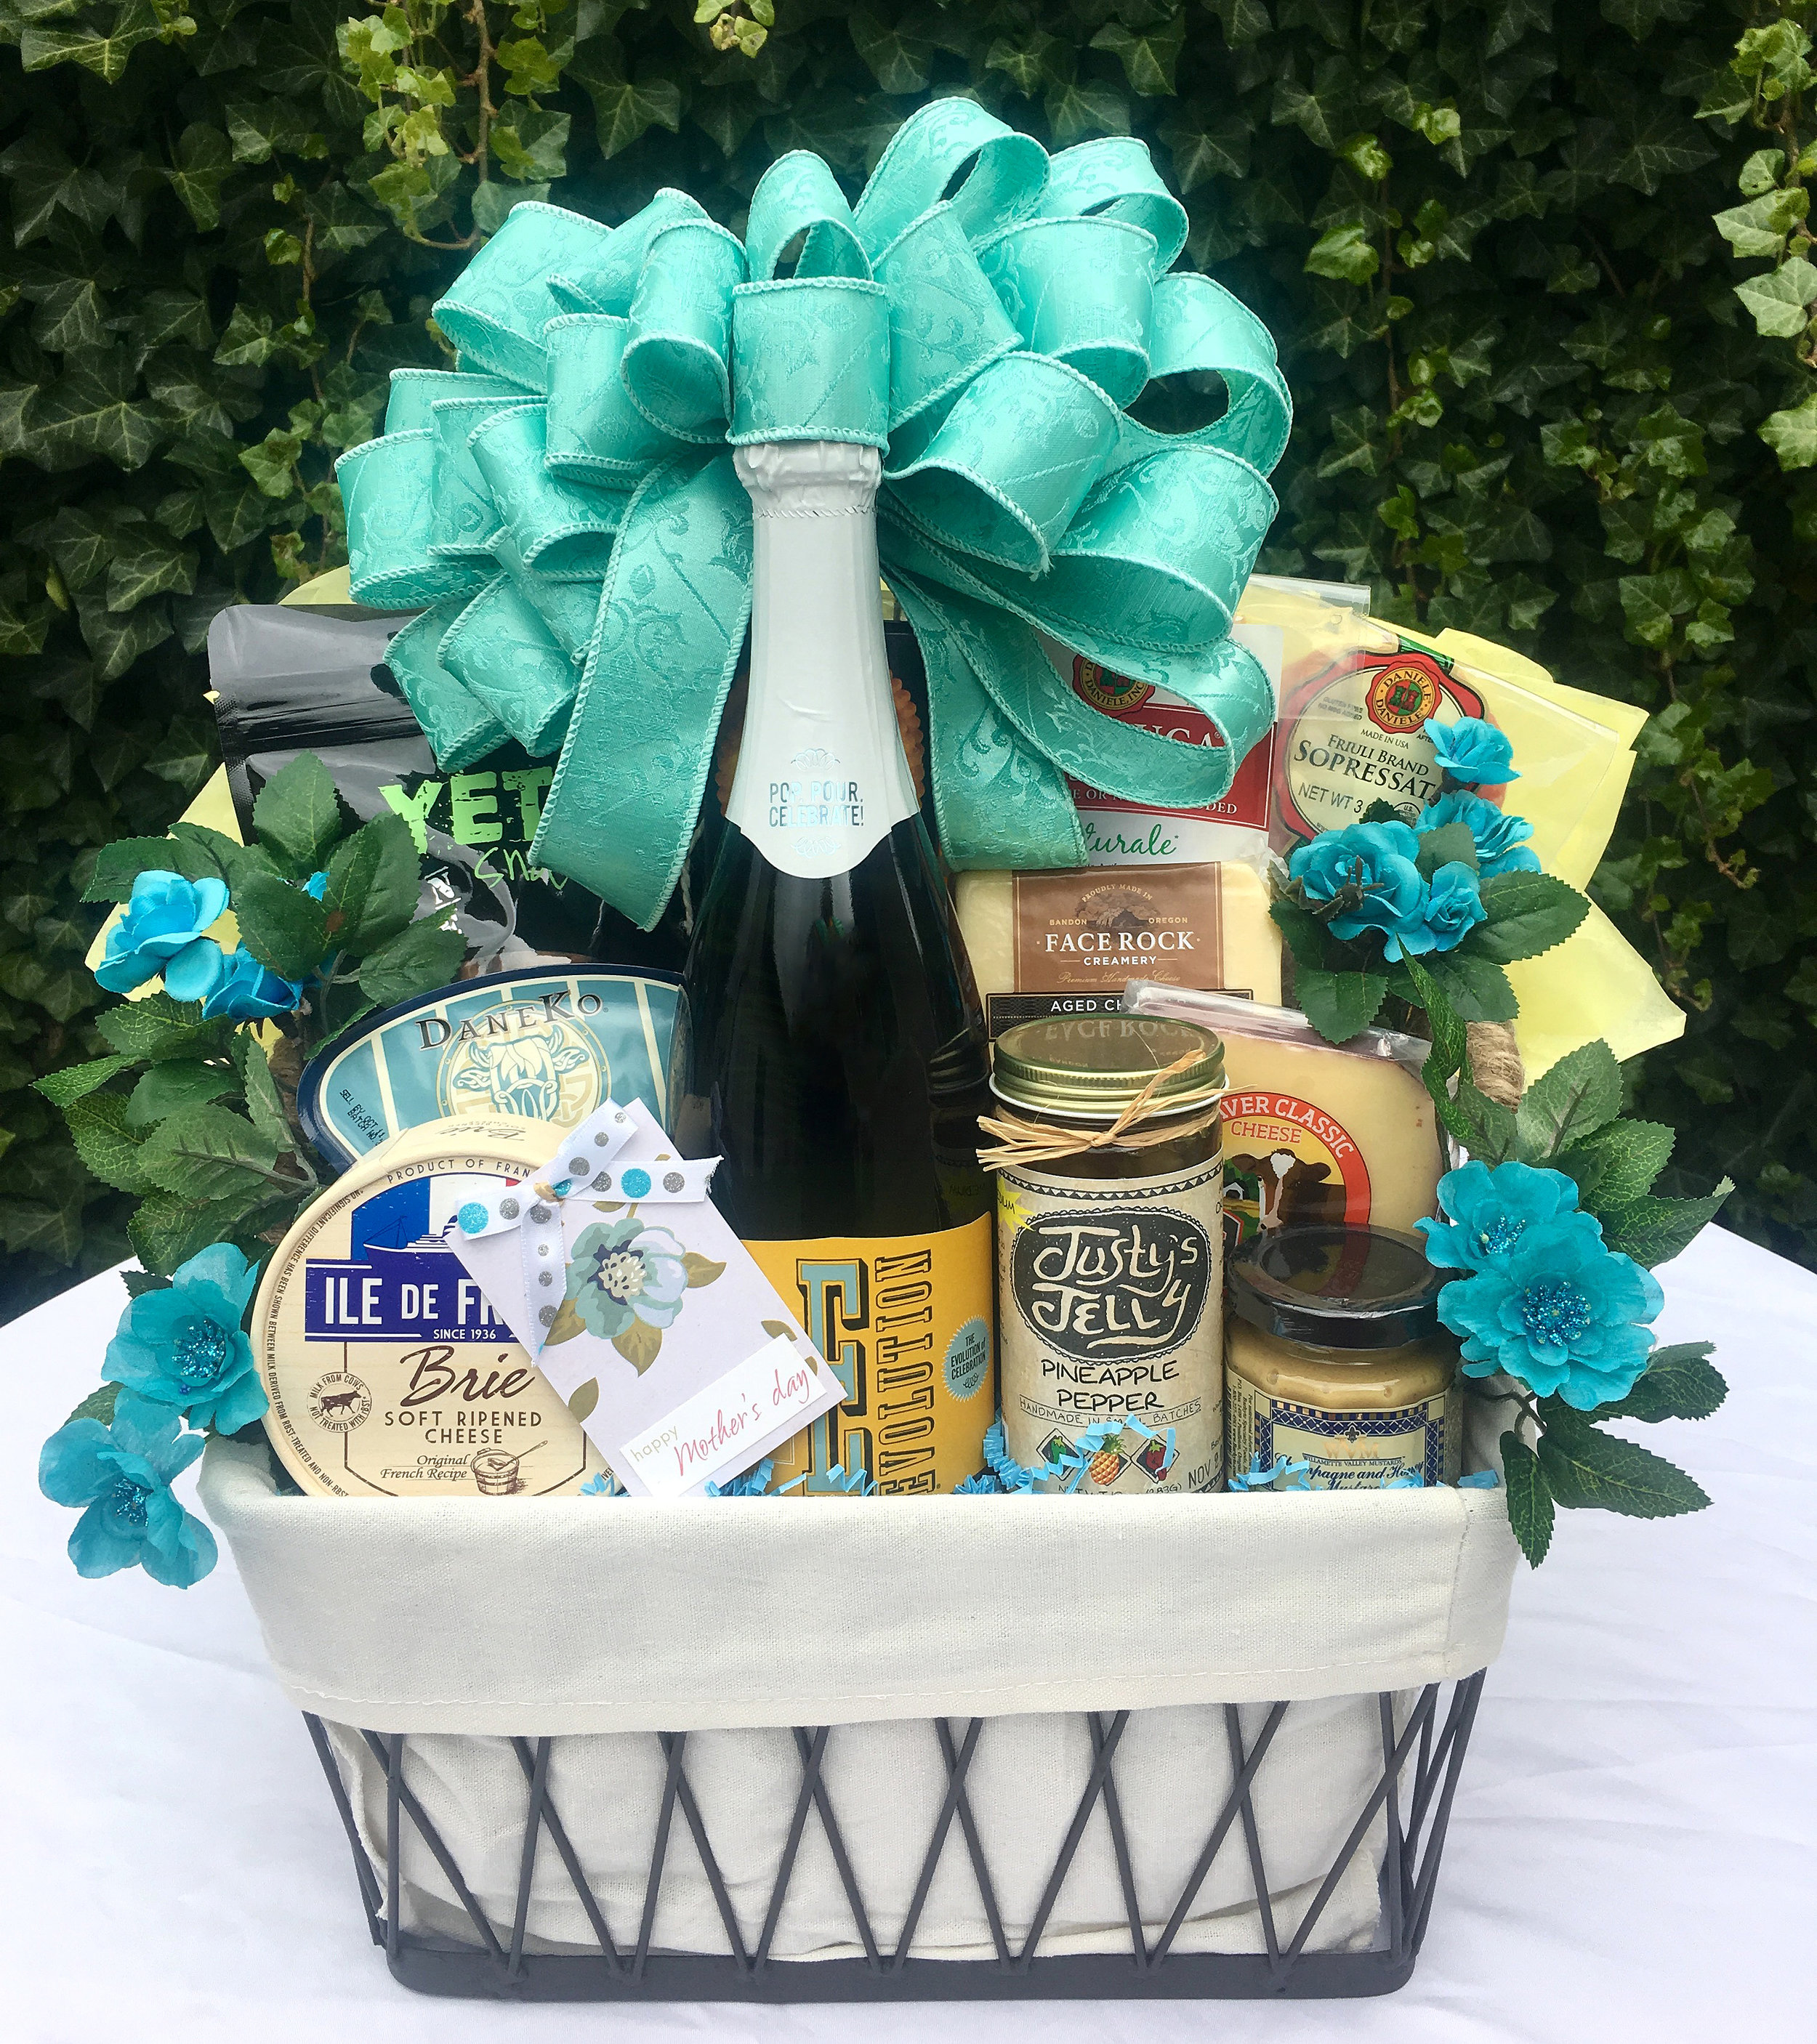 This represents a deluxe gift basket presentation, not contents specific to this gift.